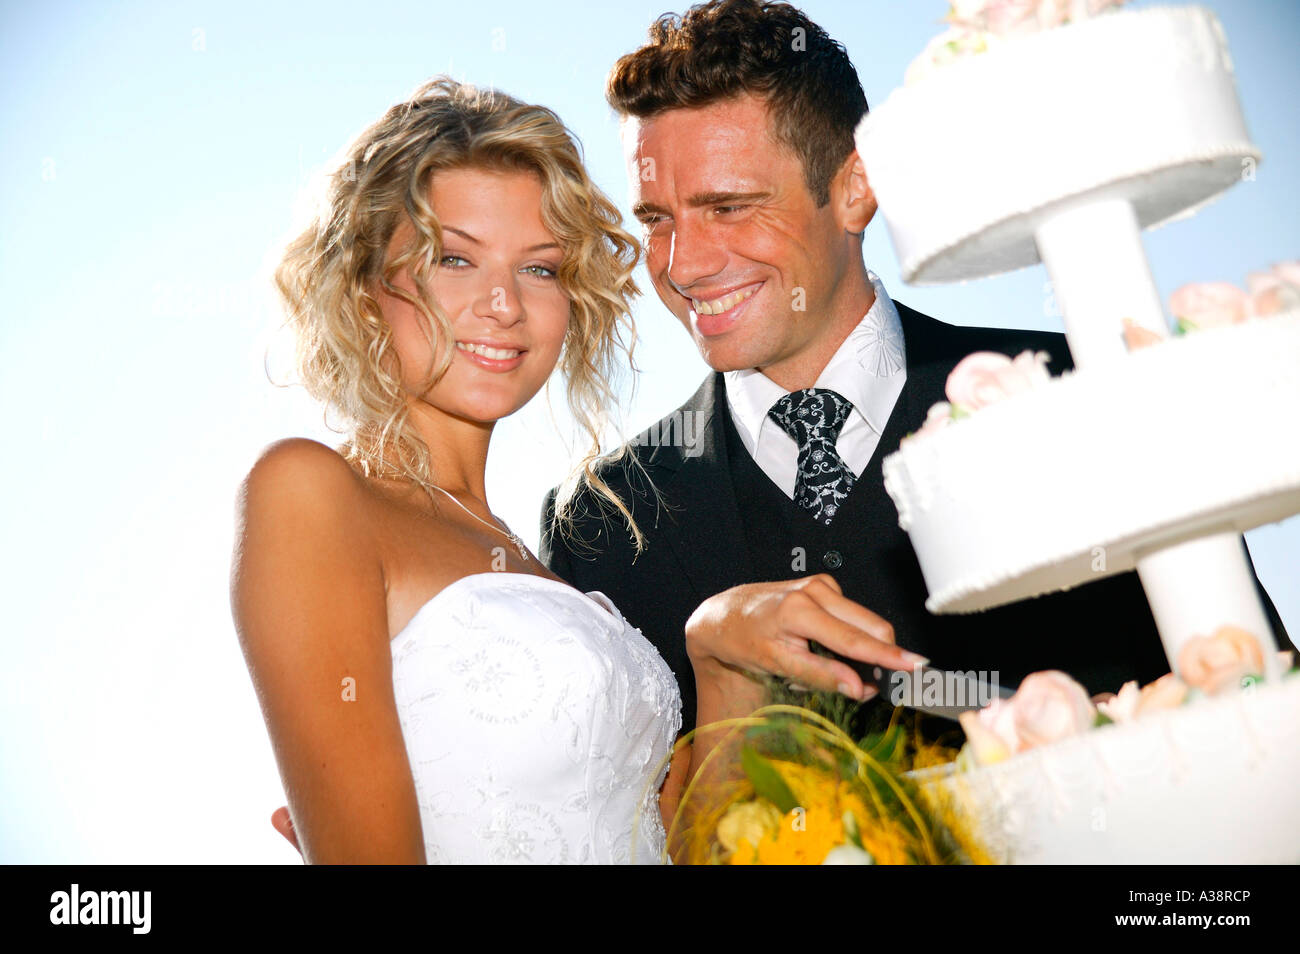 Brautpaar im Freien, mit Hochzeitstorte, bridal couple outside with weddingcake Stock Photo